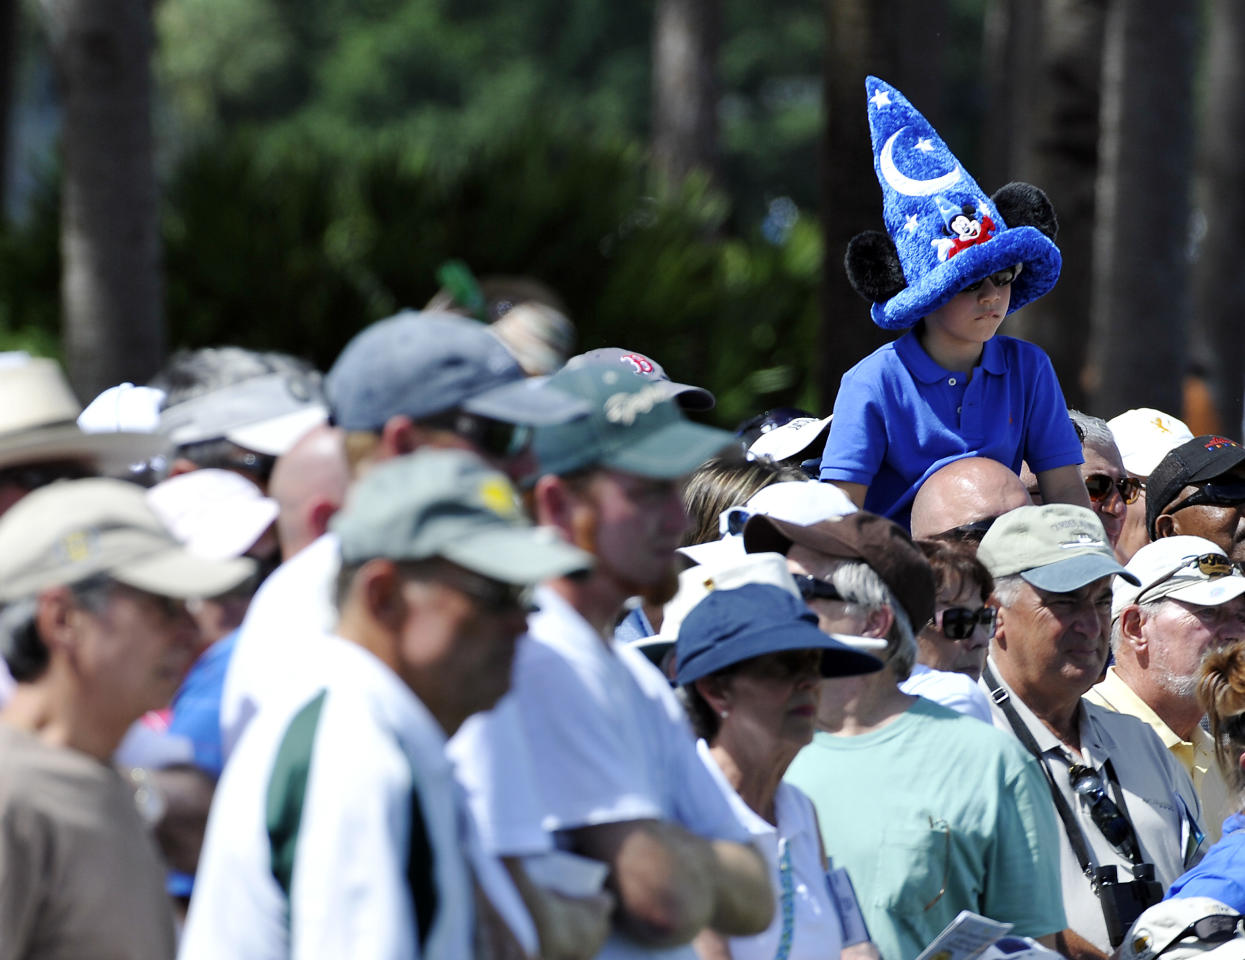 A young fan watches Rory McIlroy putt on the third hole during the second round of the Honda Classic golf tournament in Palm Beach Gardens, Fla., Friday, March 2, 2012. (AP Photo/Rainier Ehrhardt)